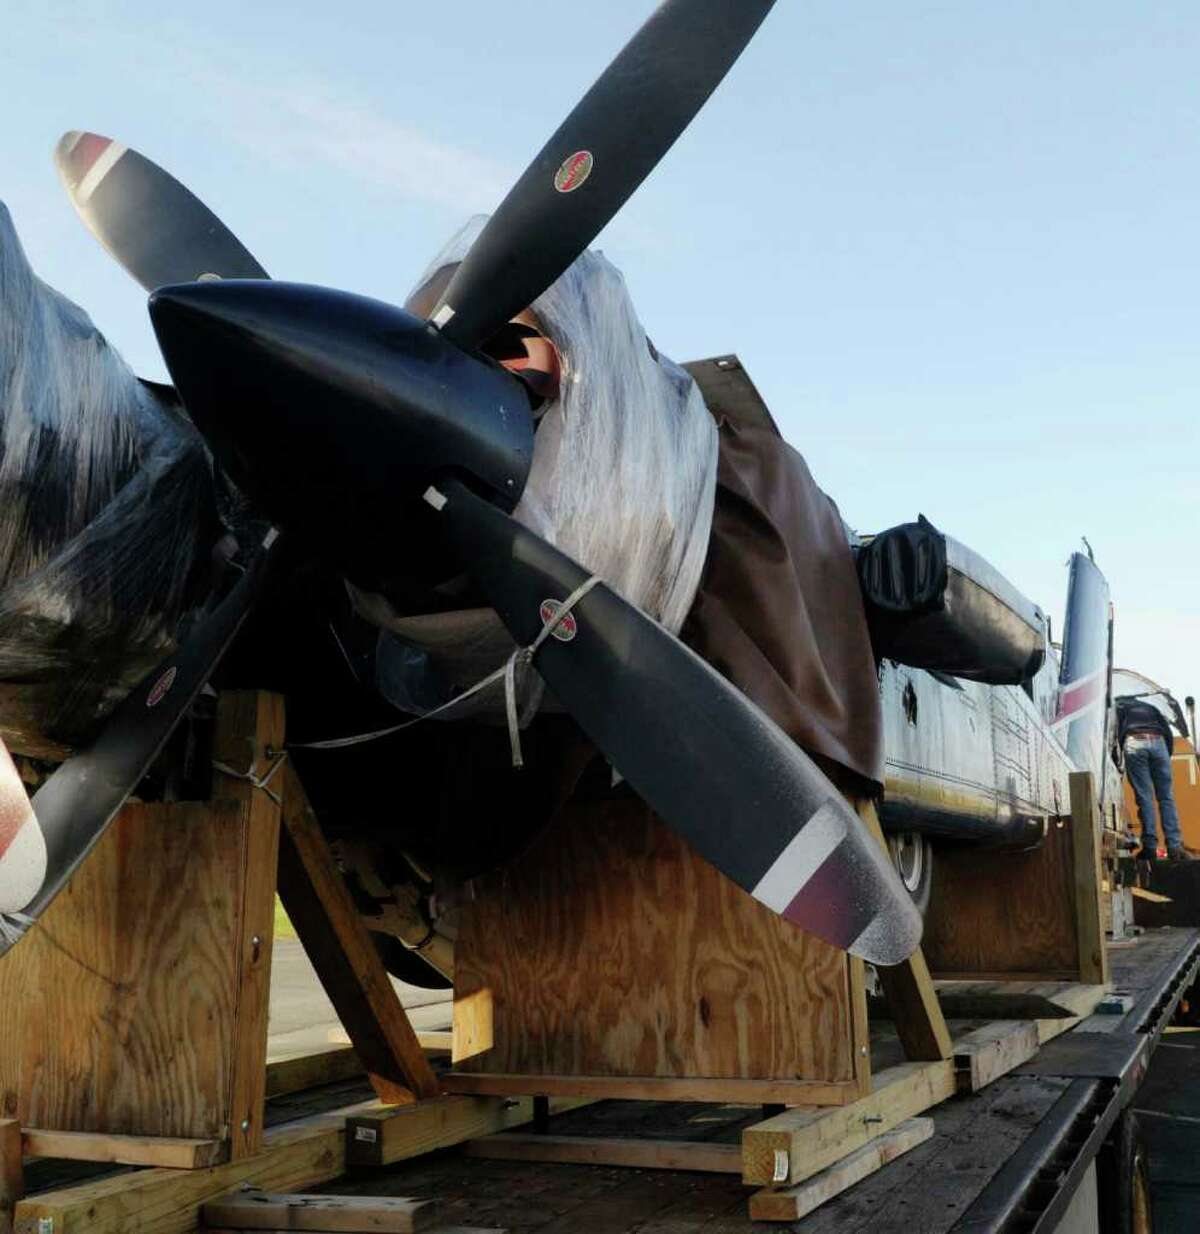 A view of the engines of the OV-10D Bronco warplane that was donated Wednesday to Questar III Rensselaer Educational Center in Troy. (Paul Buckowski / Times Union)